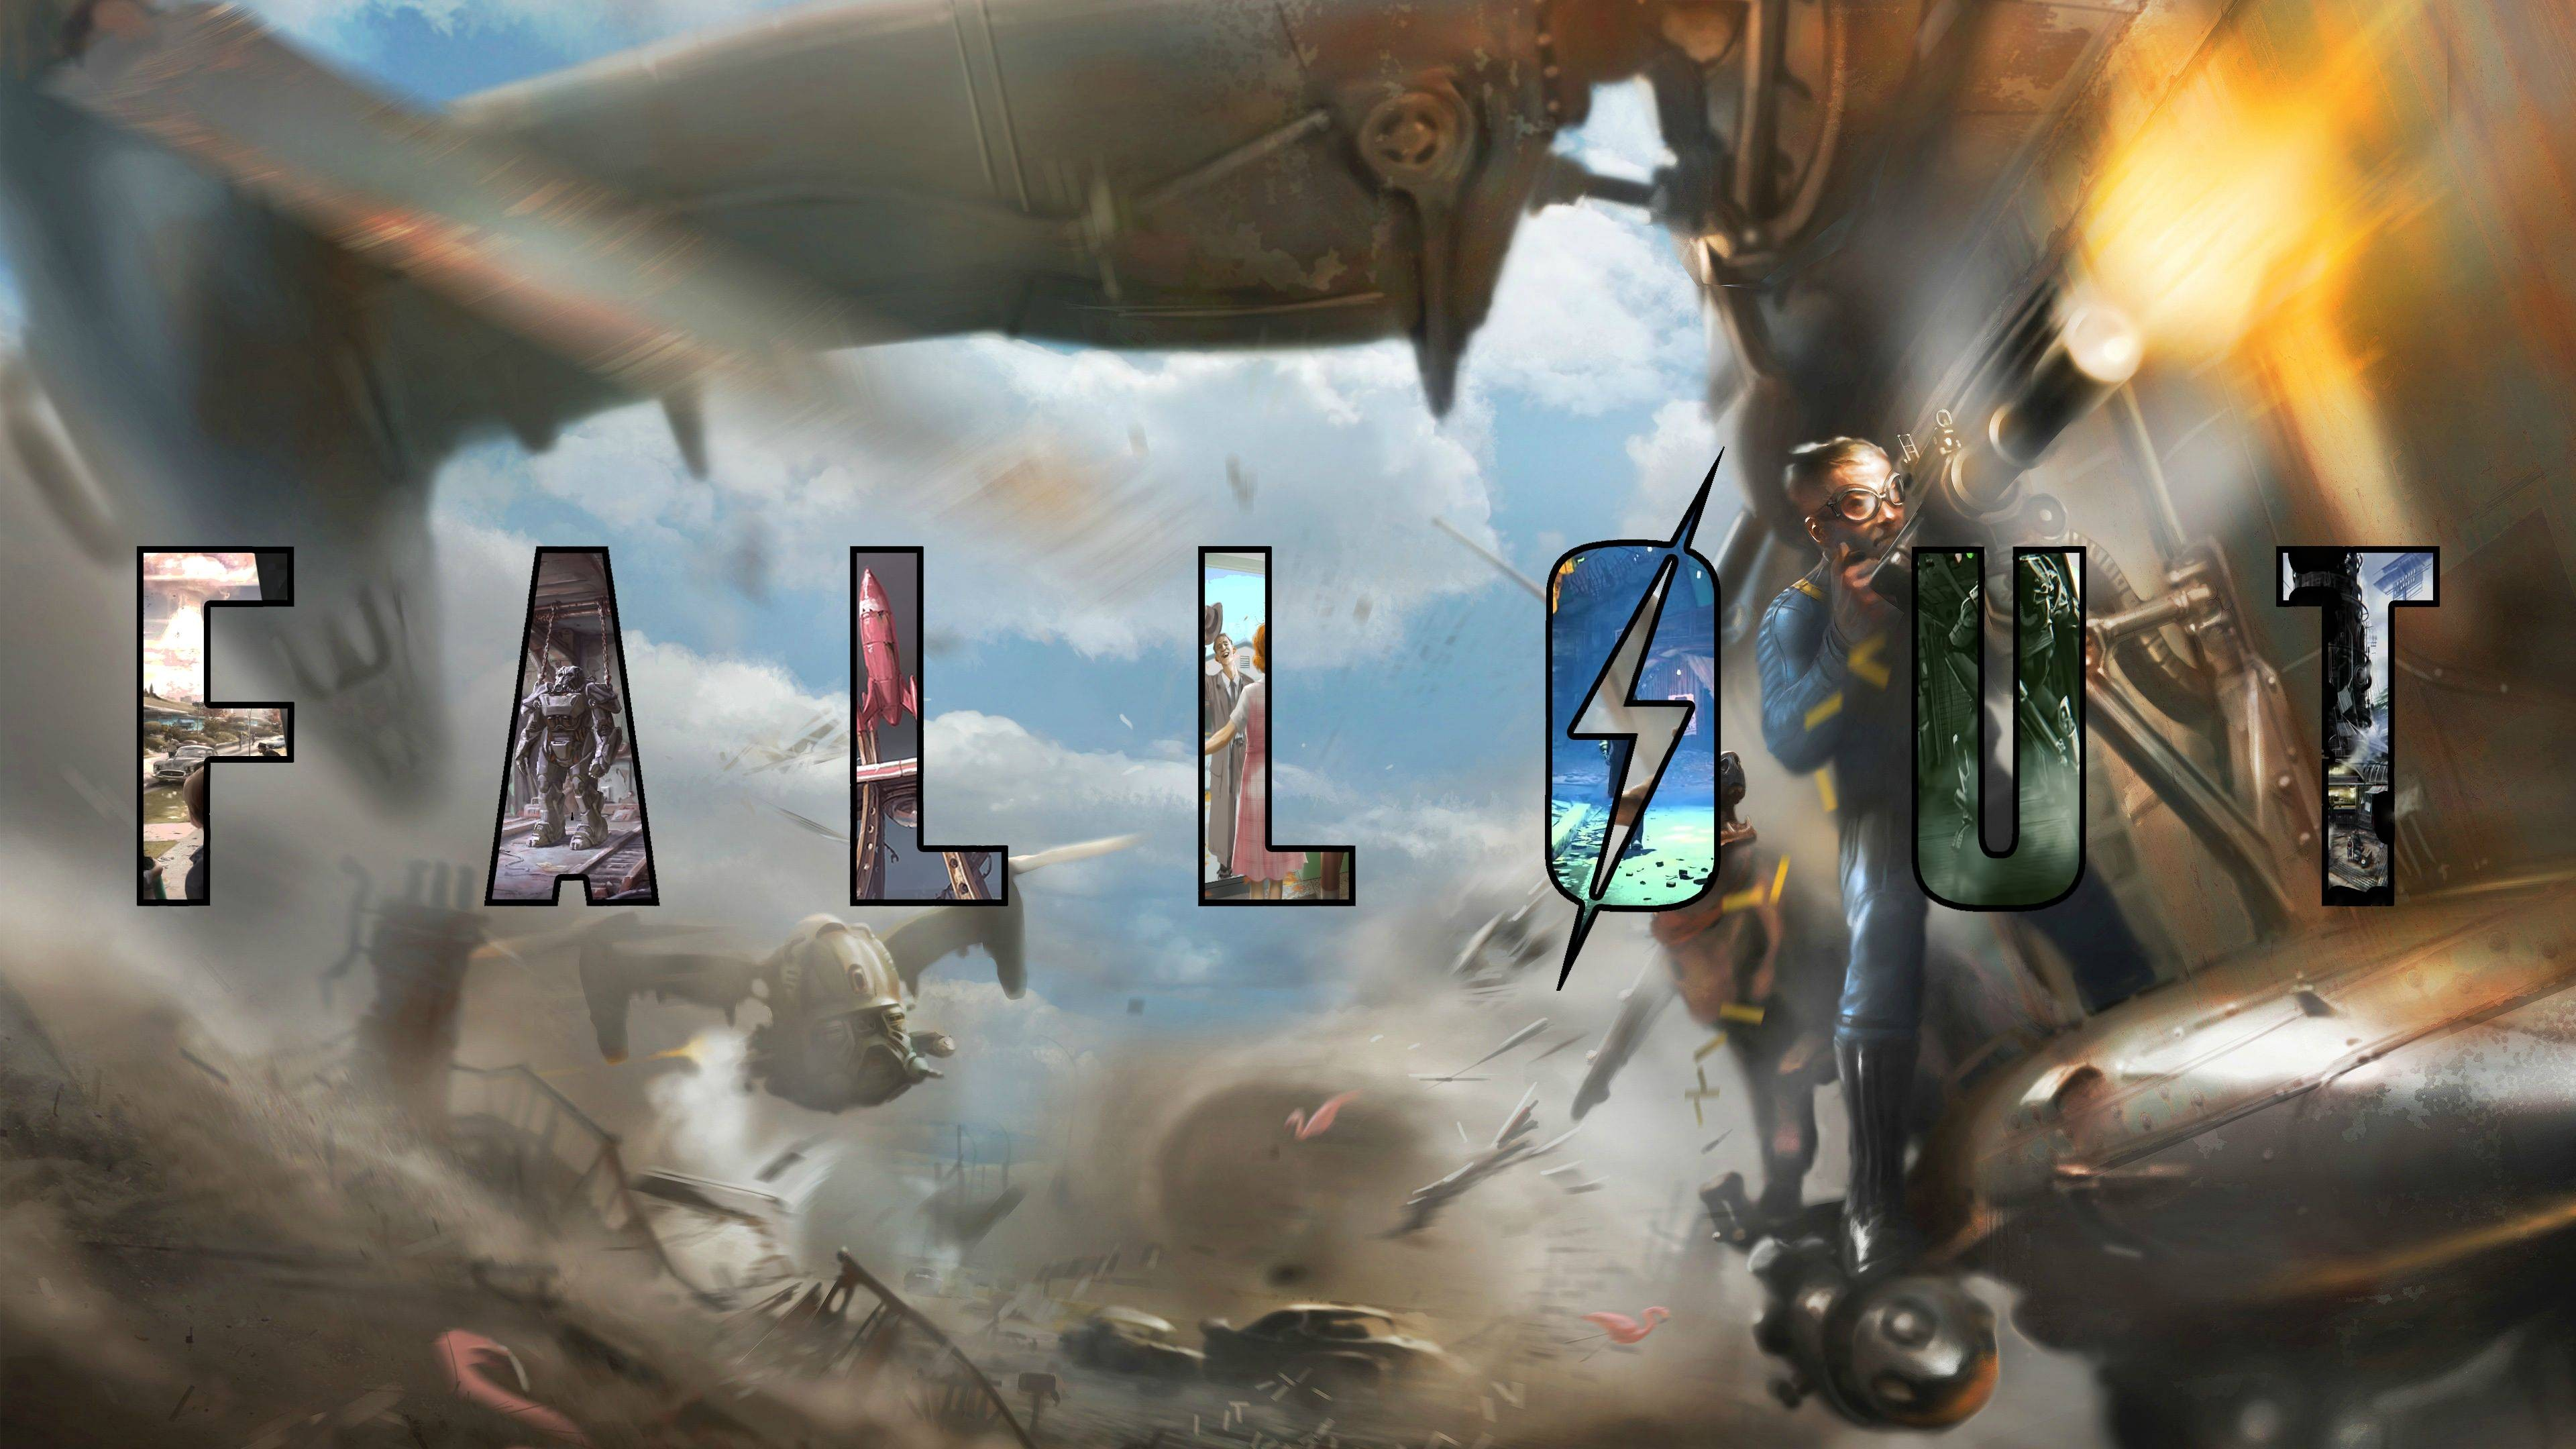 Fallout 4 wallpaper ·① Download free awesome HD wallpapers ...